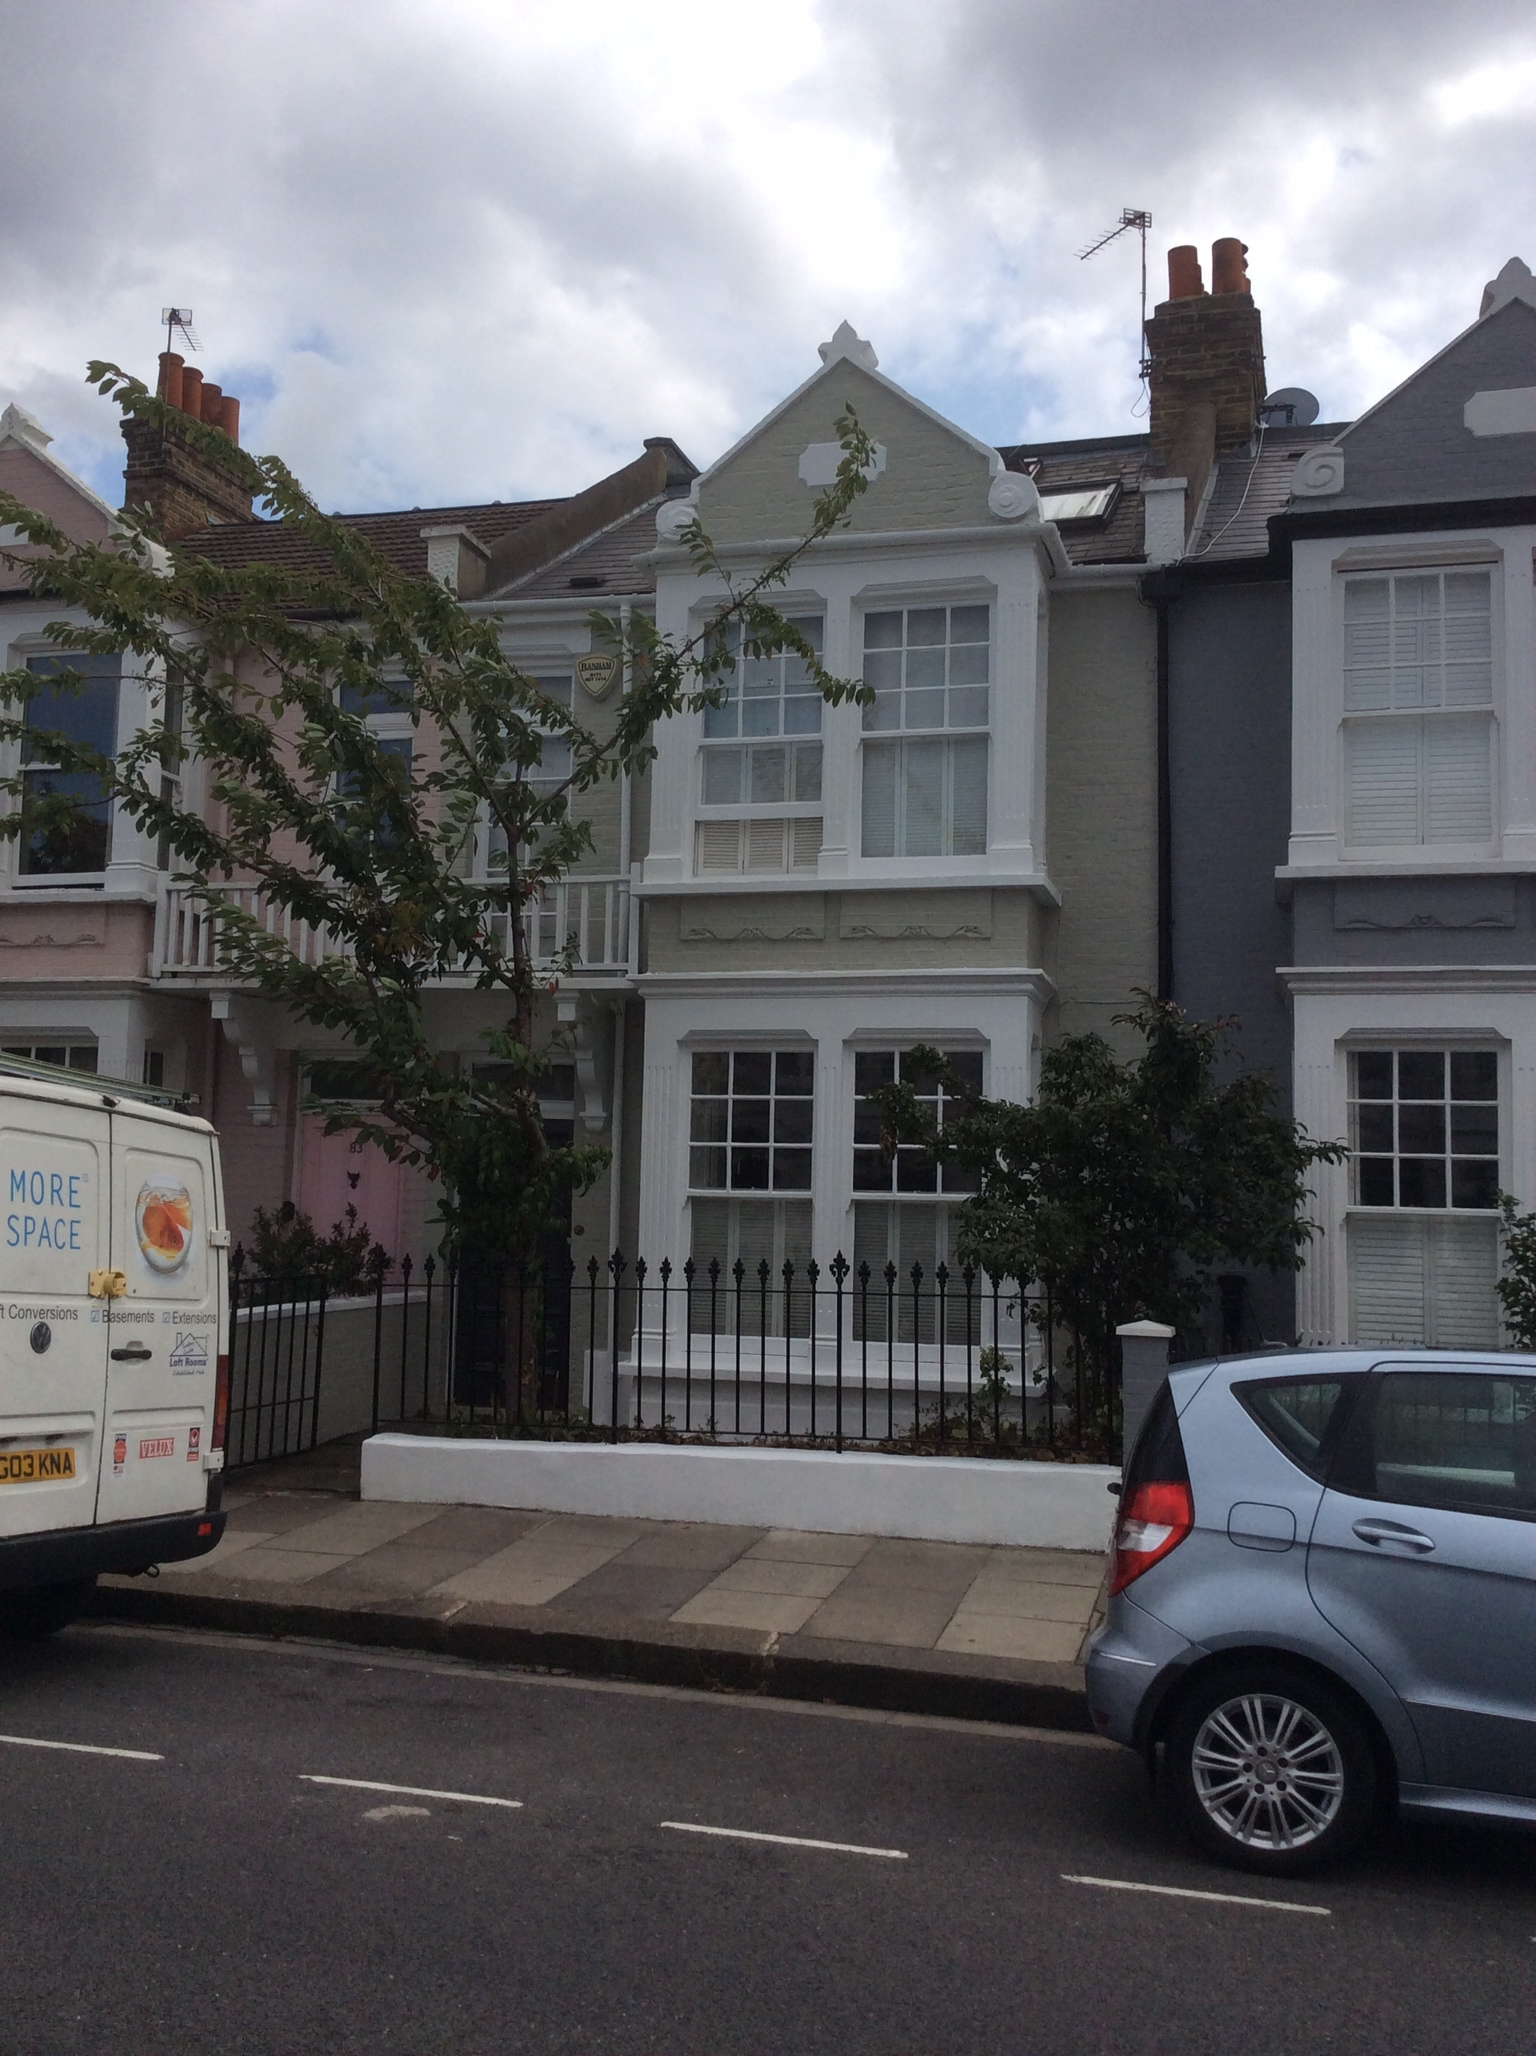 David Banks Painting And Decorating | 20 Filmer Road Fulham, London SW6 7BW | +44 20 7385 9759